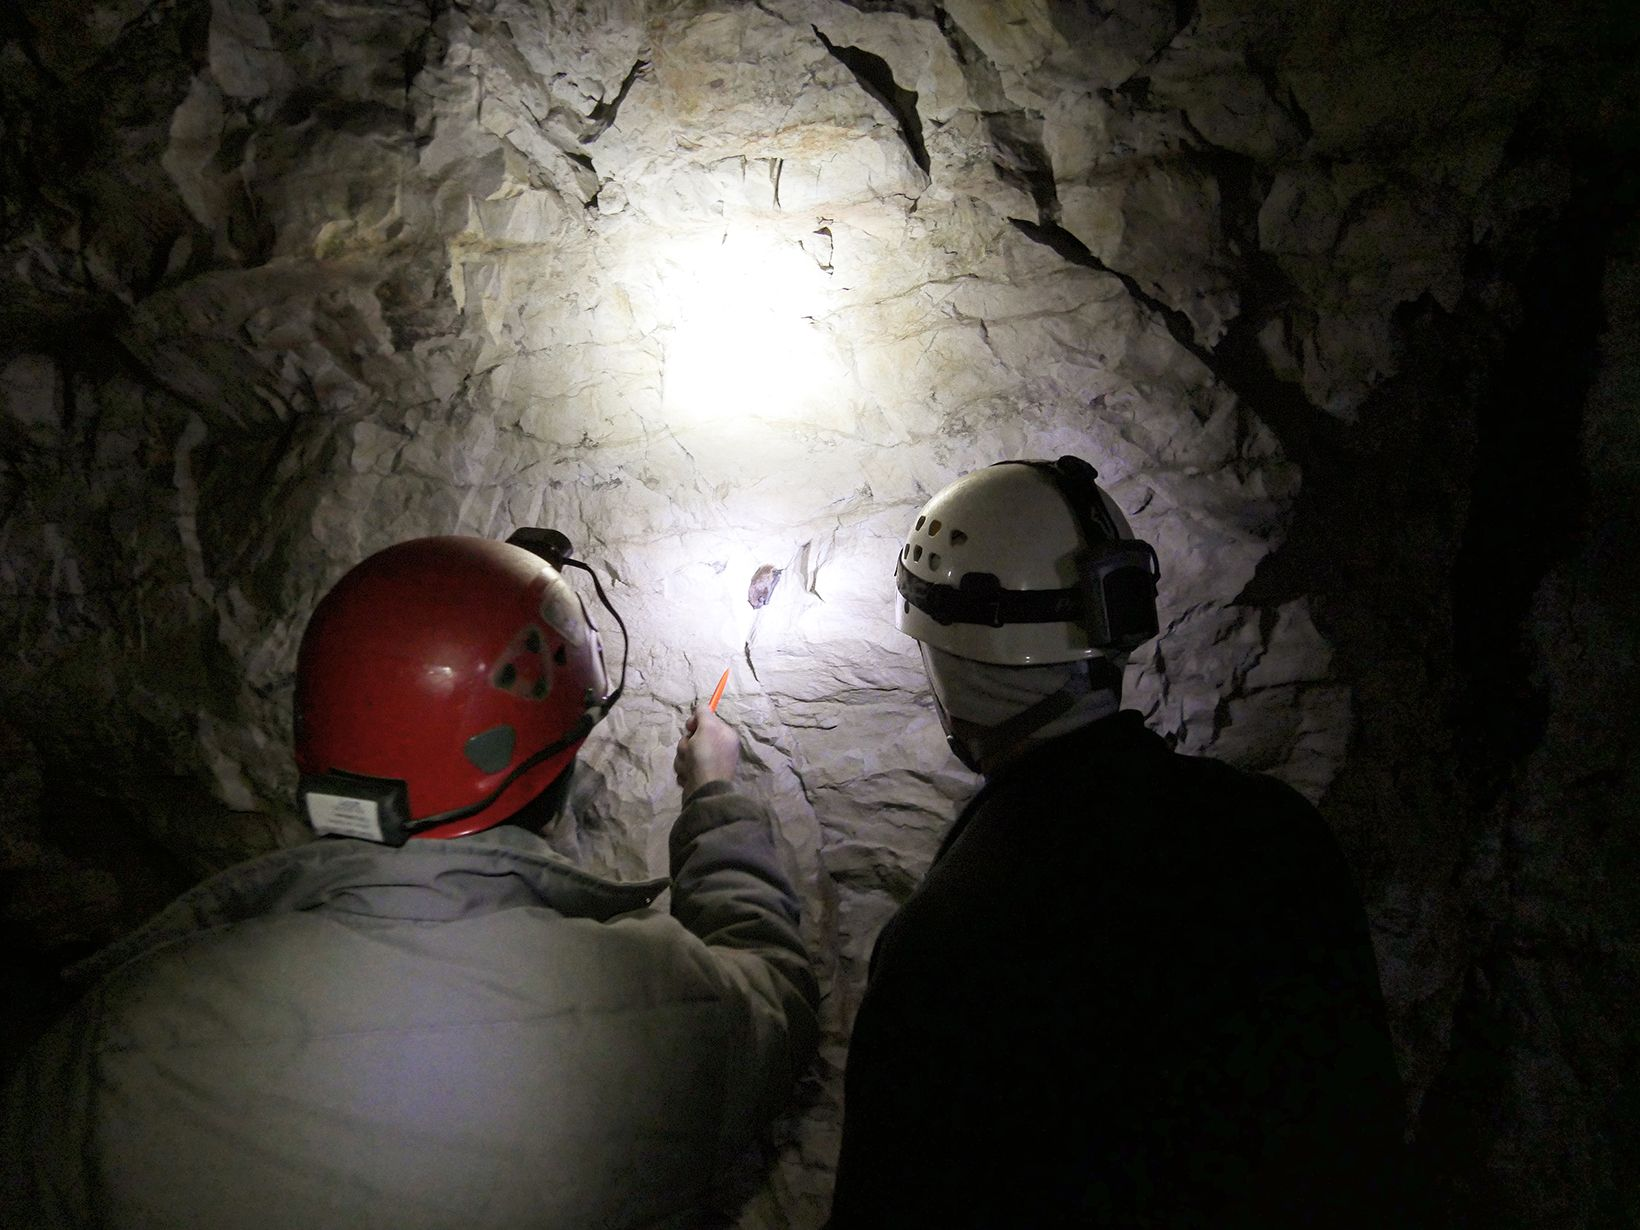 View from behind of two men observing a hibernating bat in a cave. Their hard hat lamps illuminate the small mammal clinging to the cave wall.